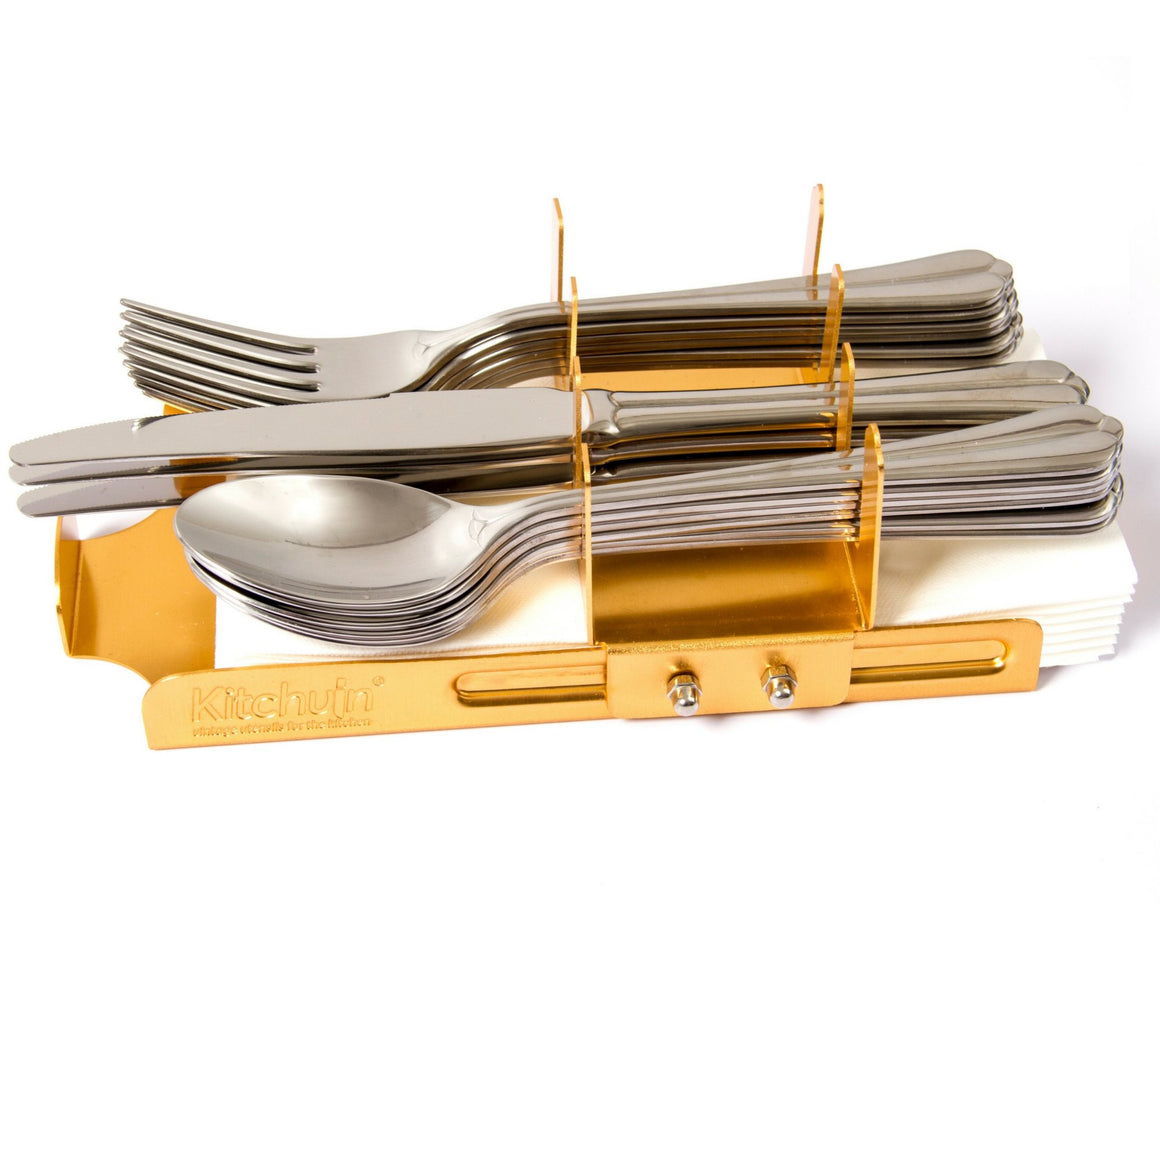 Table Cutlery and Napkin Holder